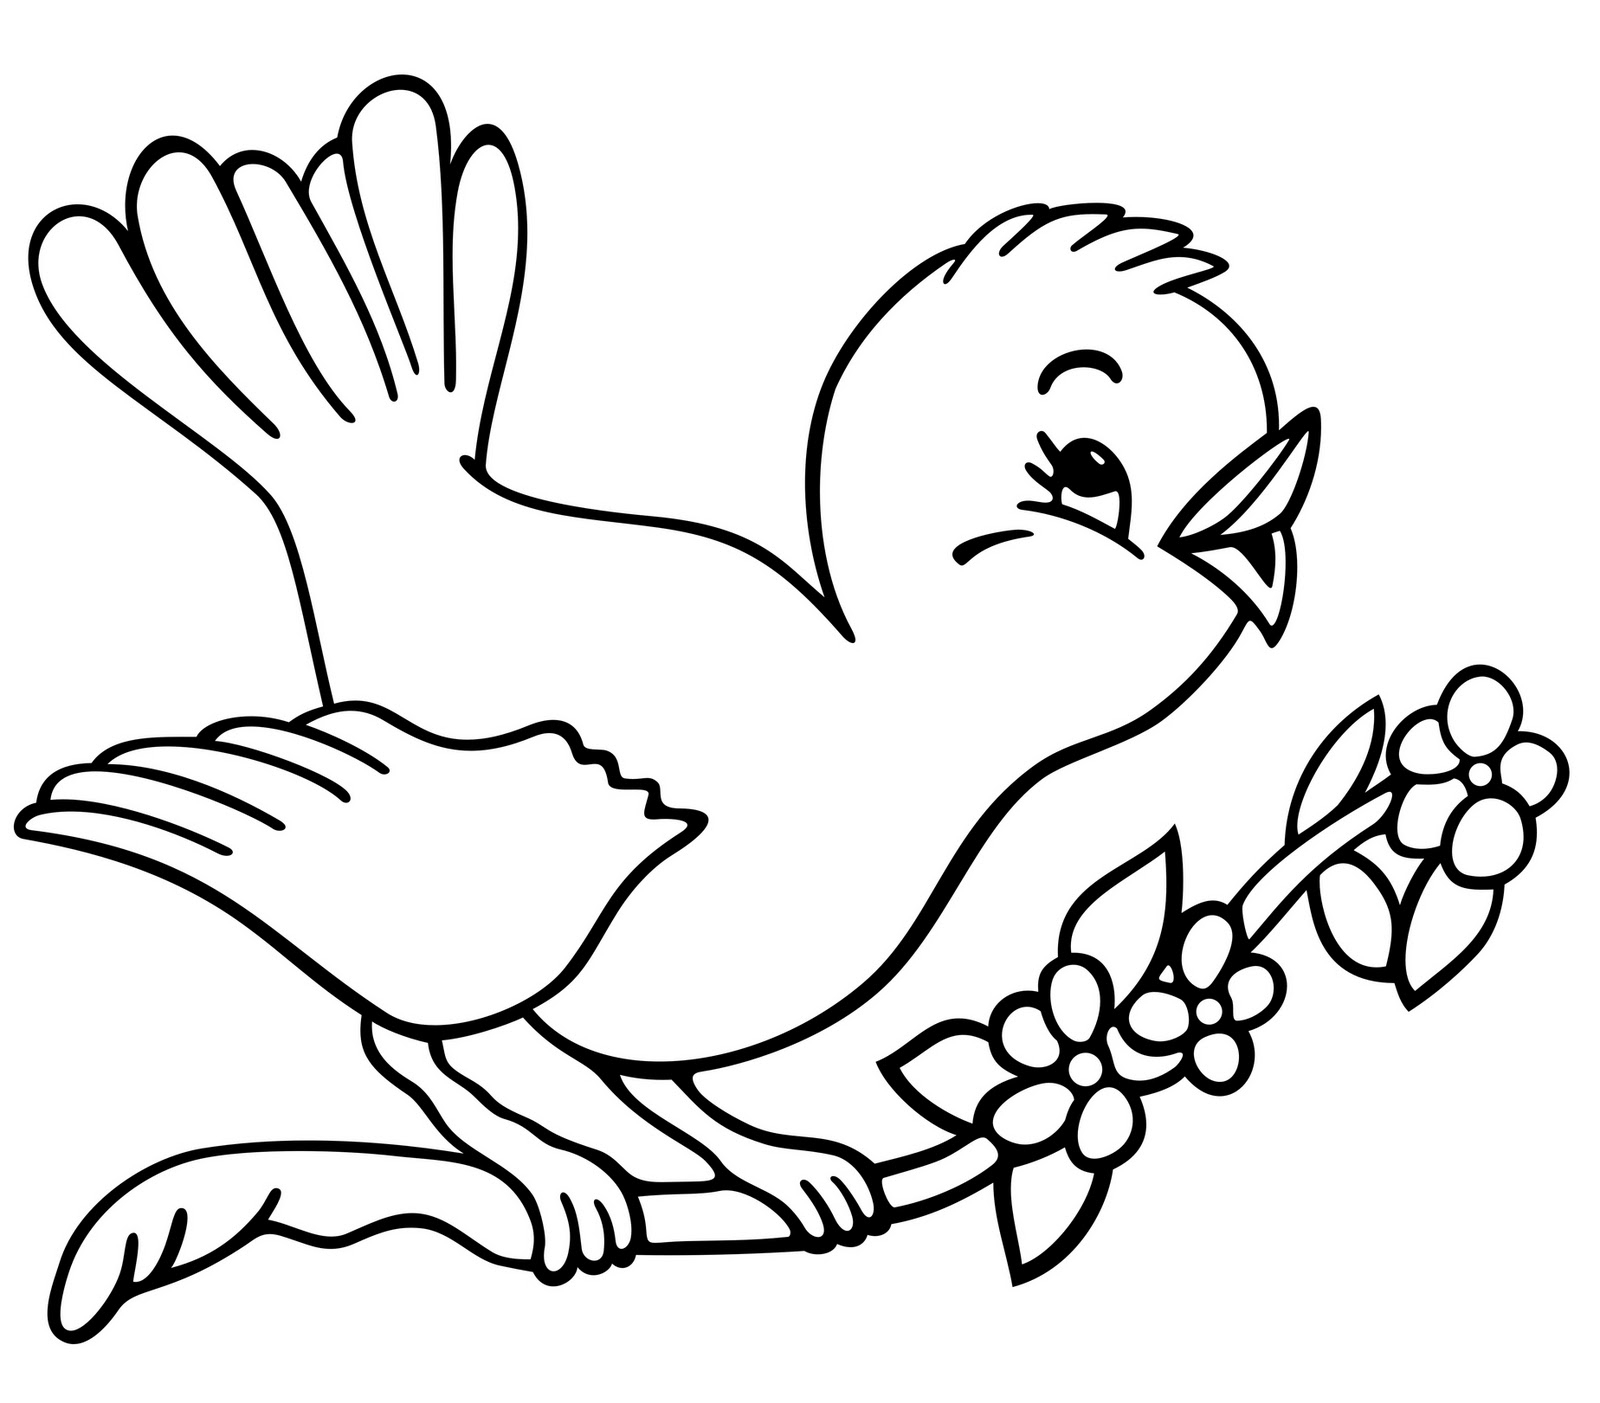 1600x1403 Simple Birds Drawings For Kids Coloring Pages Draw Easy Animals